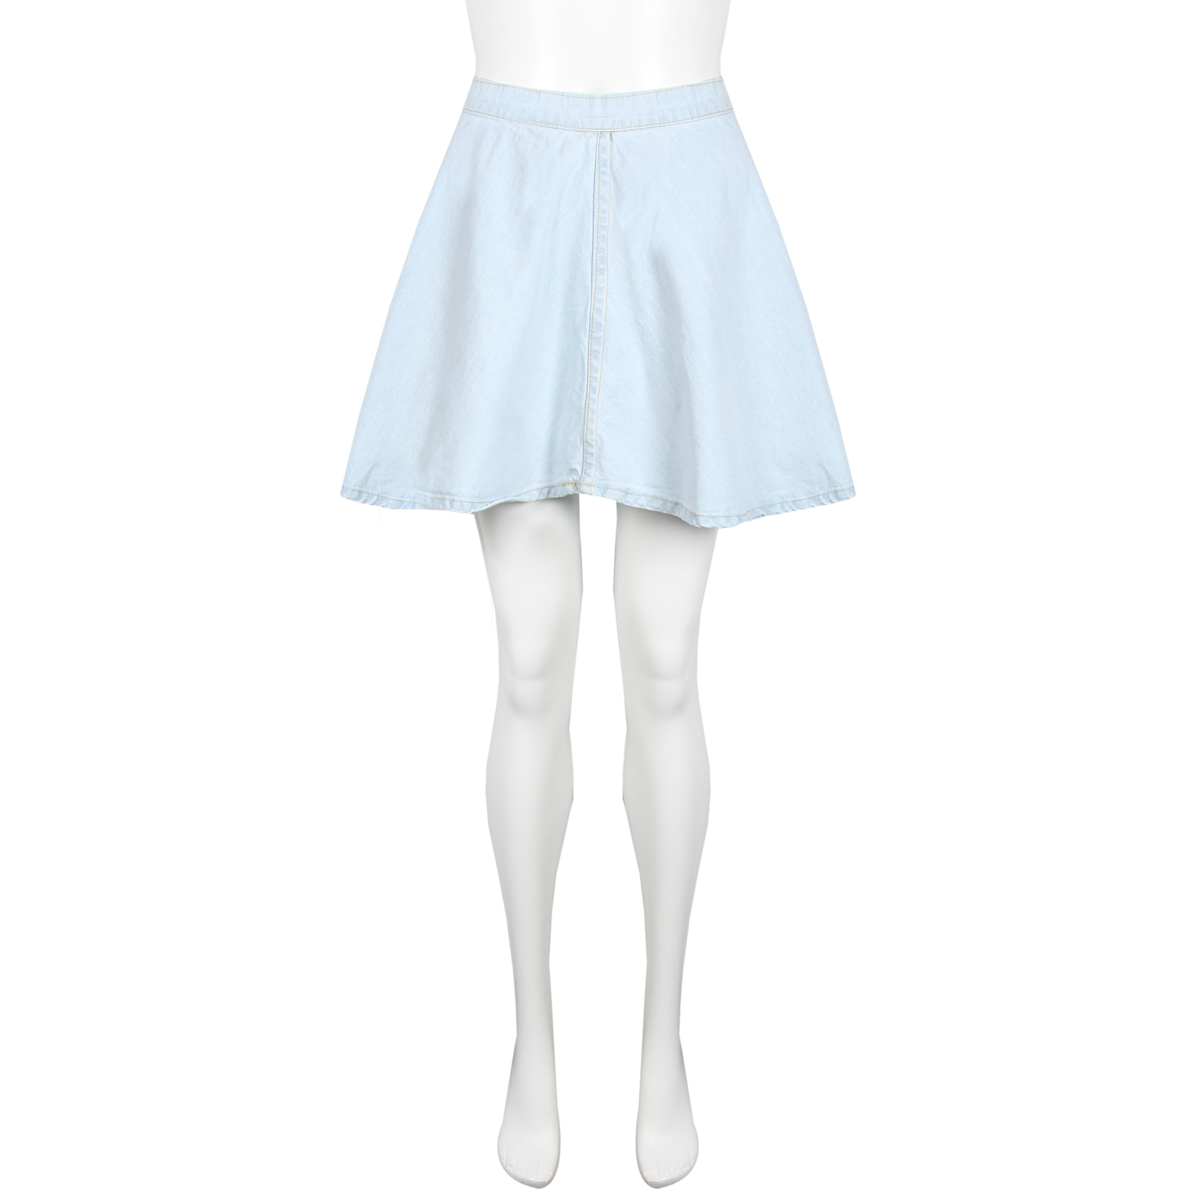 new womens light blue wash denim skater skirt mini